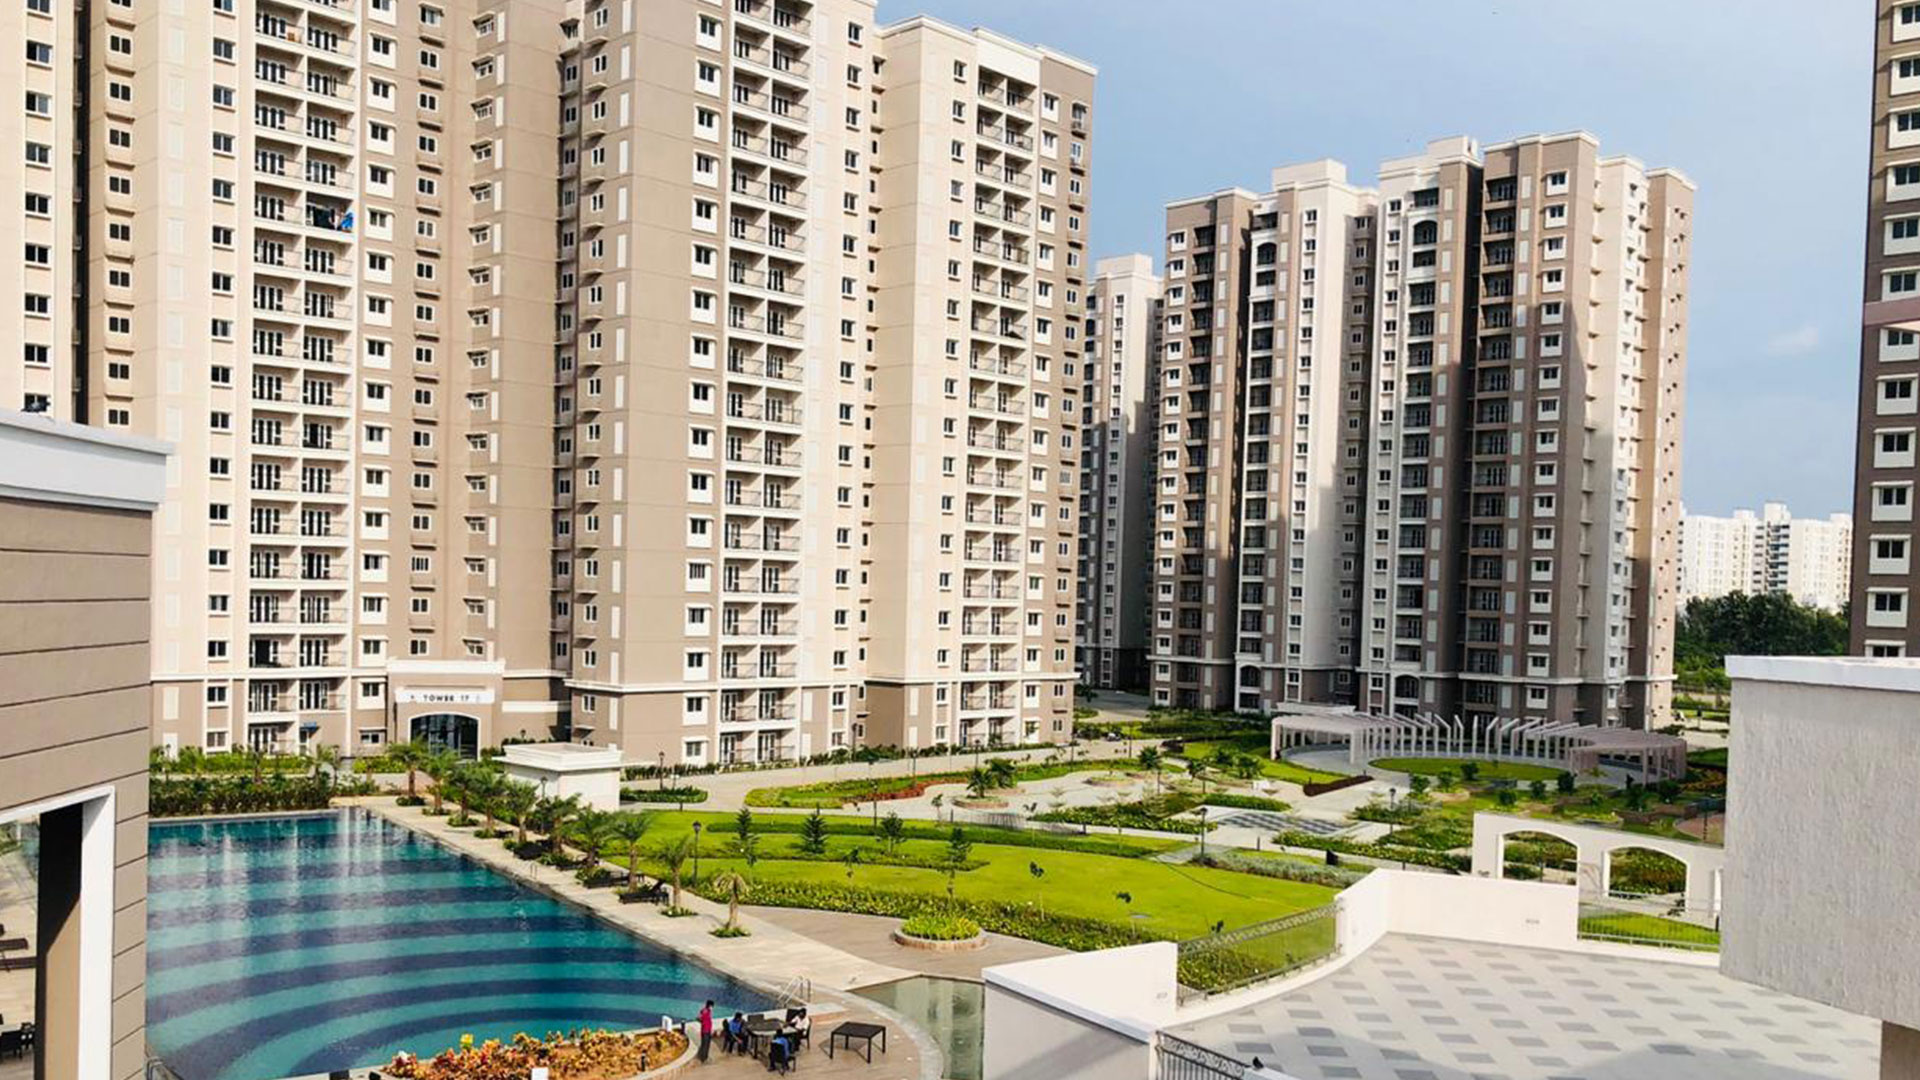 prestige-song-of-the-south-Apartment-in-yelenahalli-Bangalore-Image-01